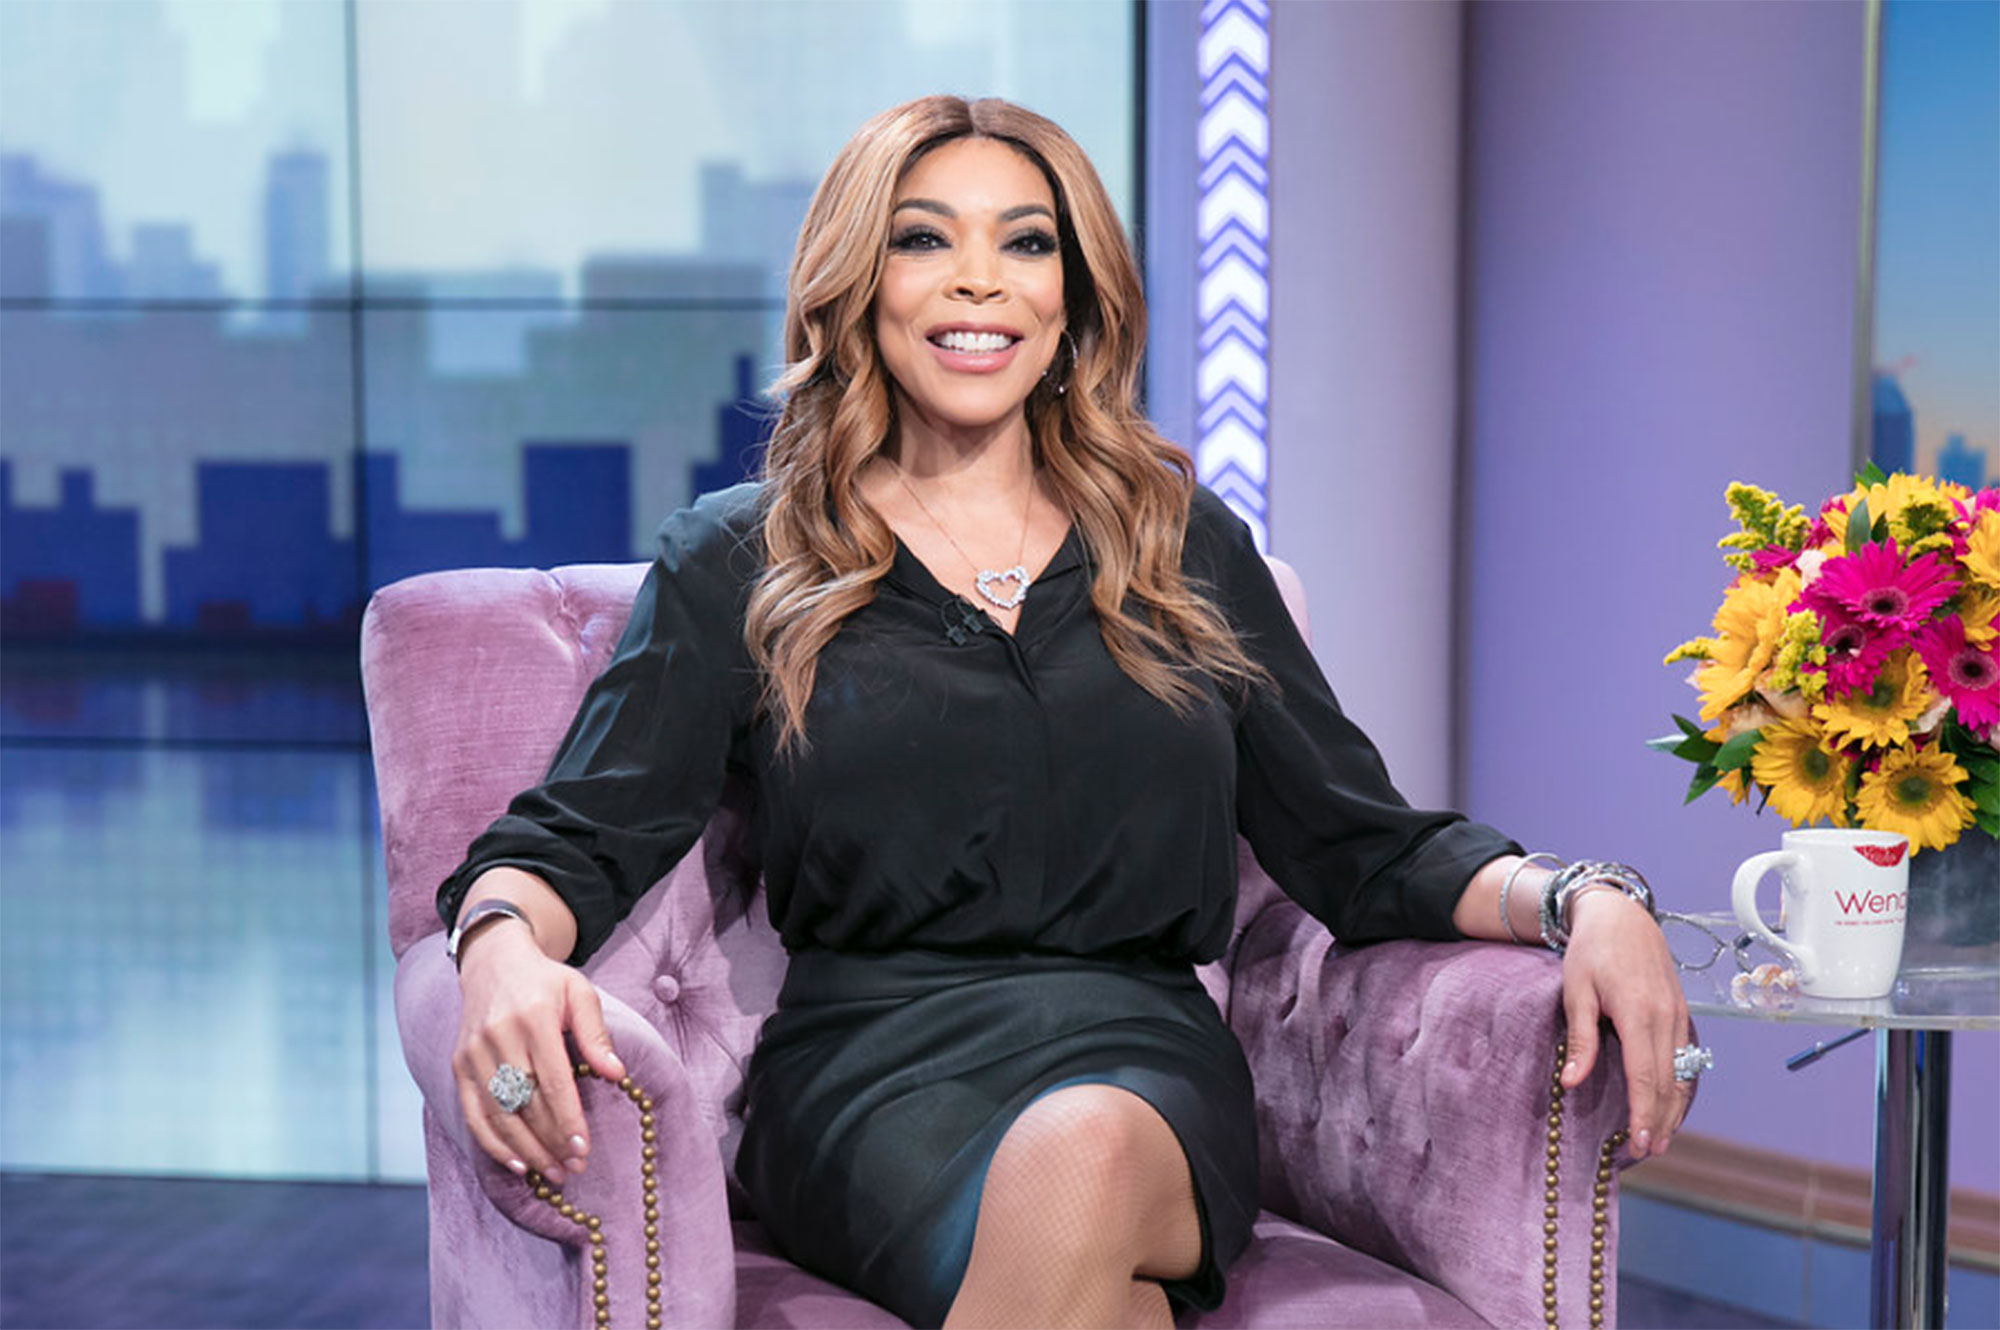 Wendy Williams's Fans Are Upset After She Says She Wants To Remain Friends With Kevin Hunter